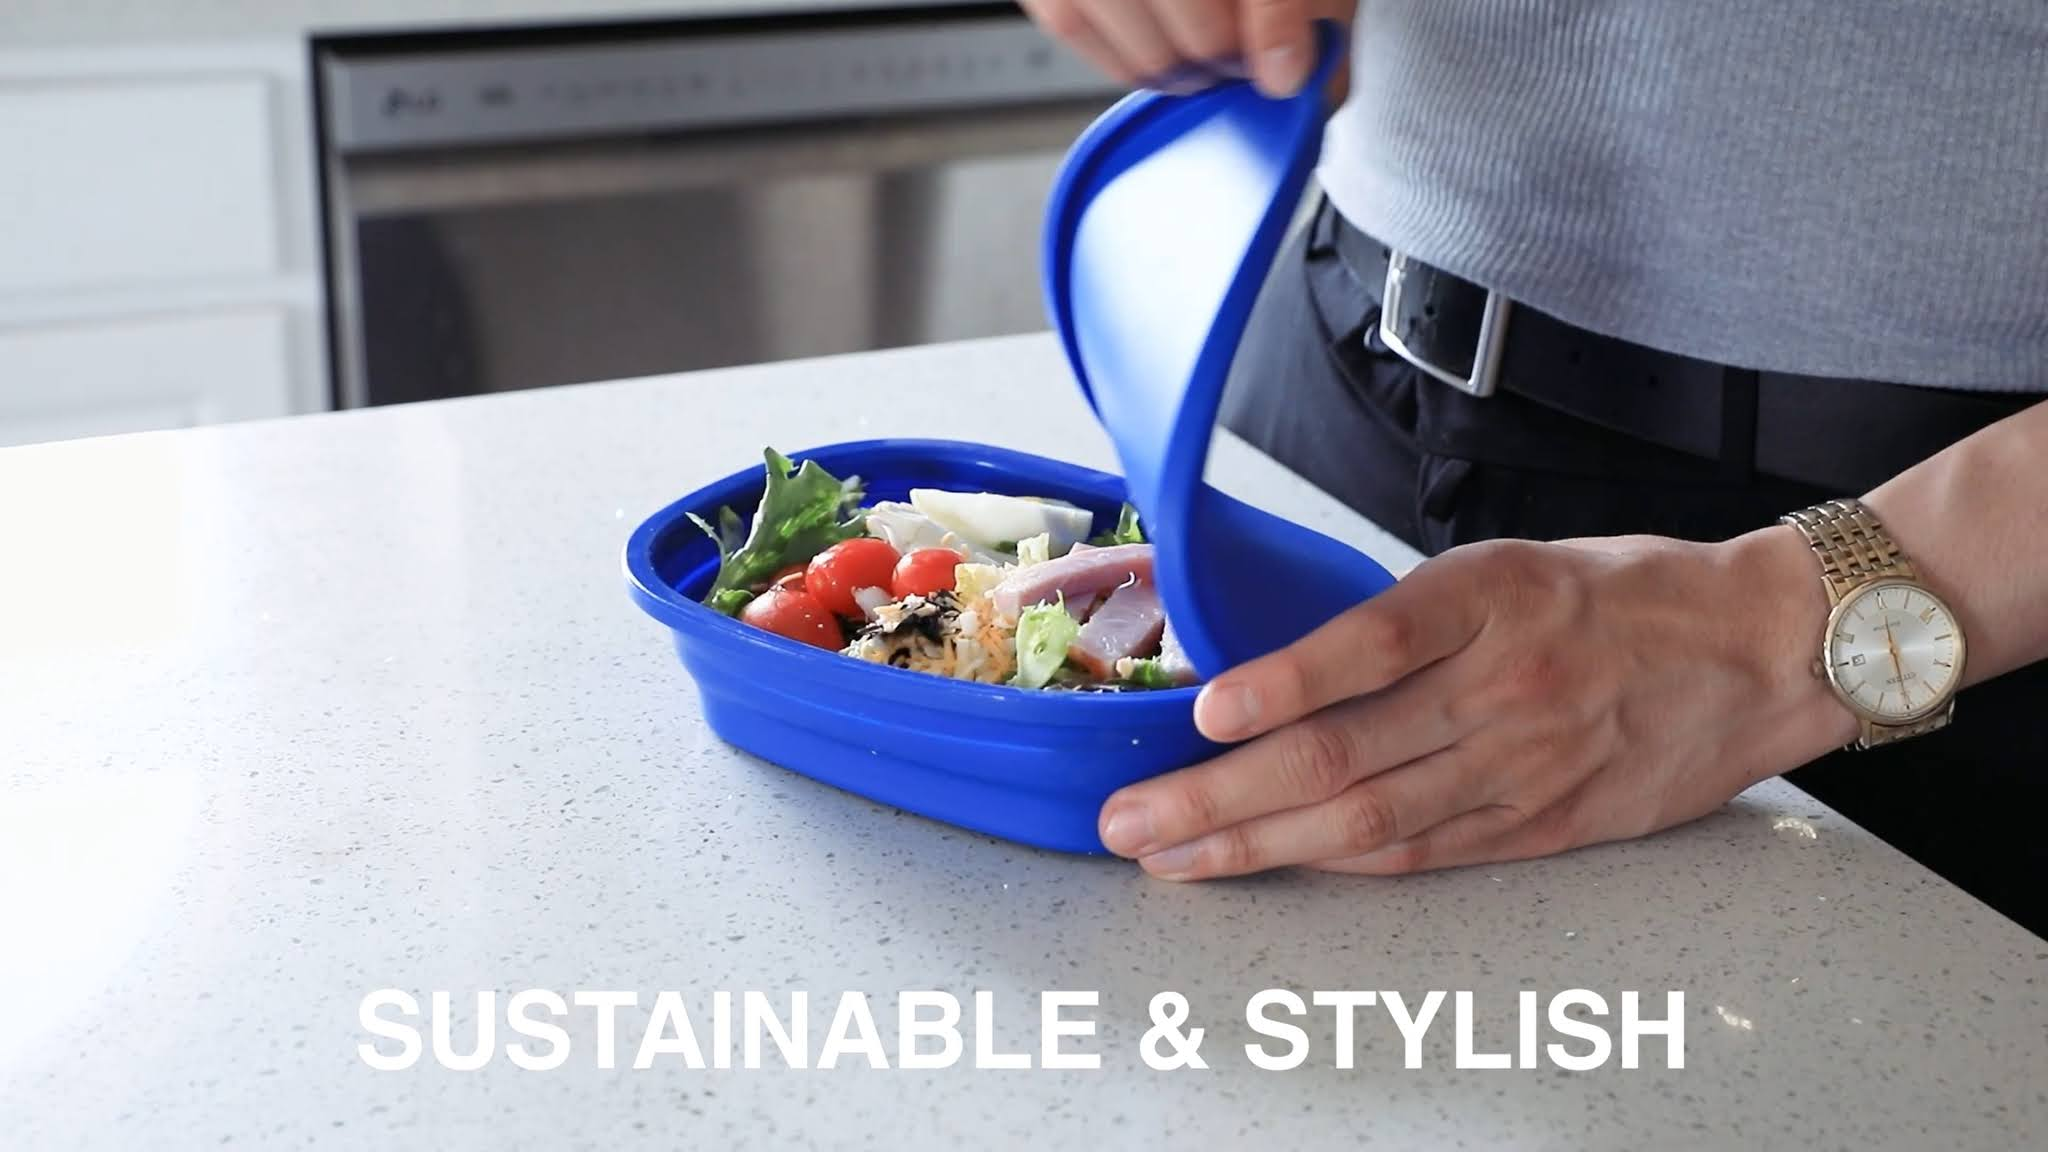 Reusable Eco-Friendly Kitchen Products To Shop On Amazon